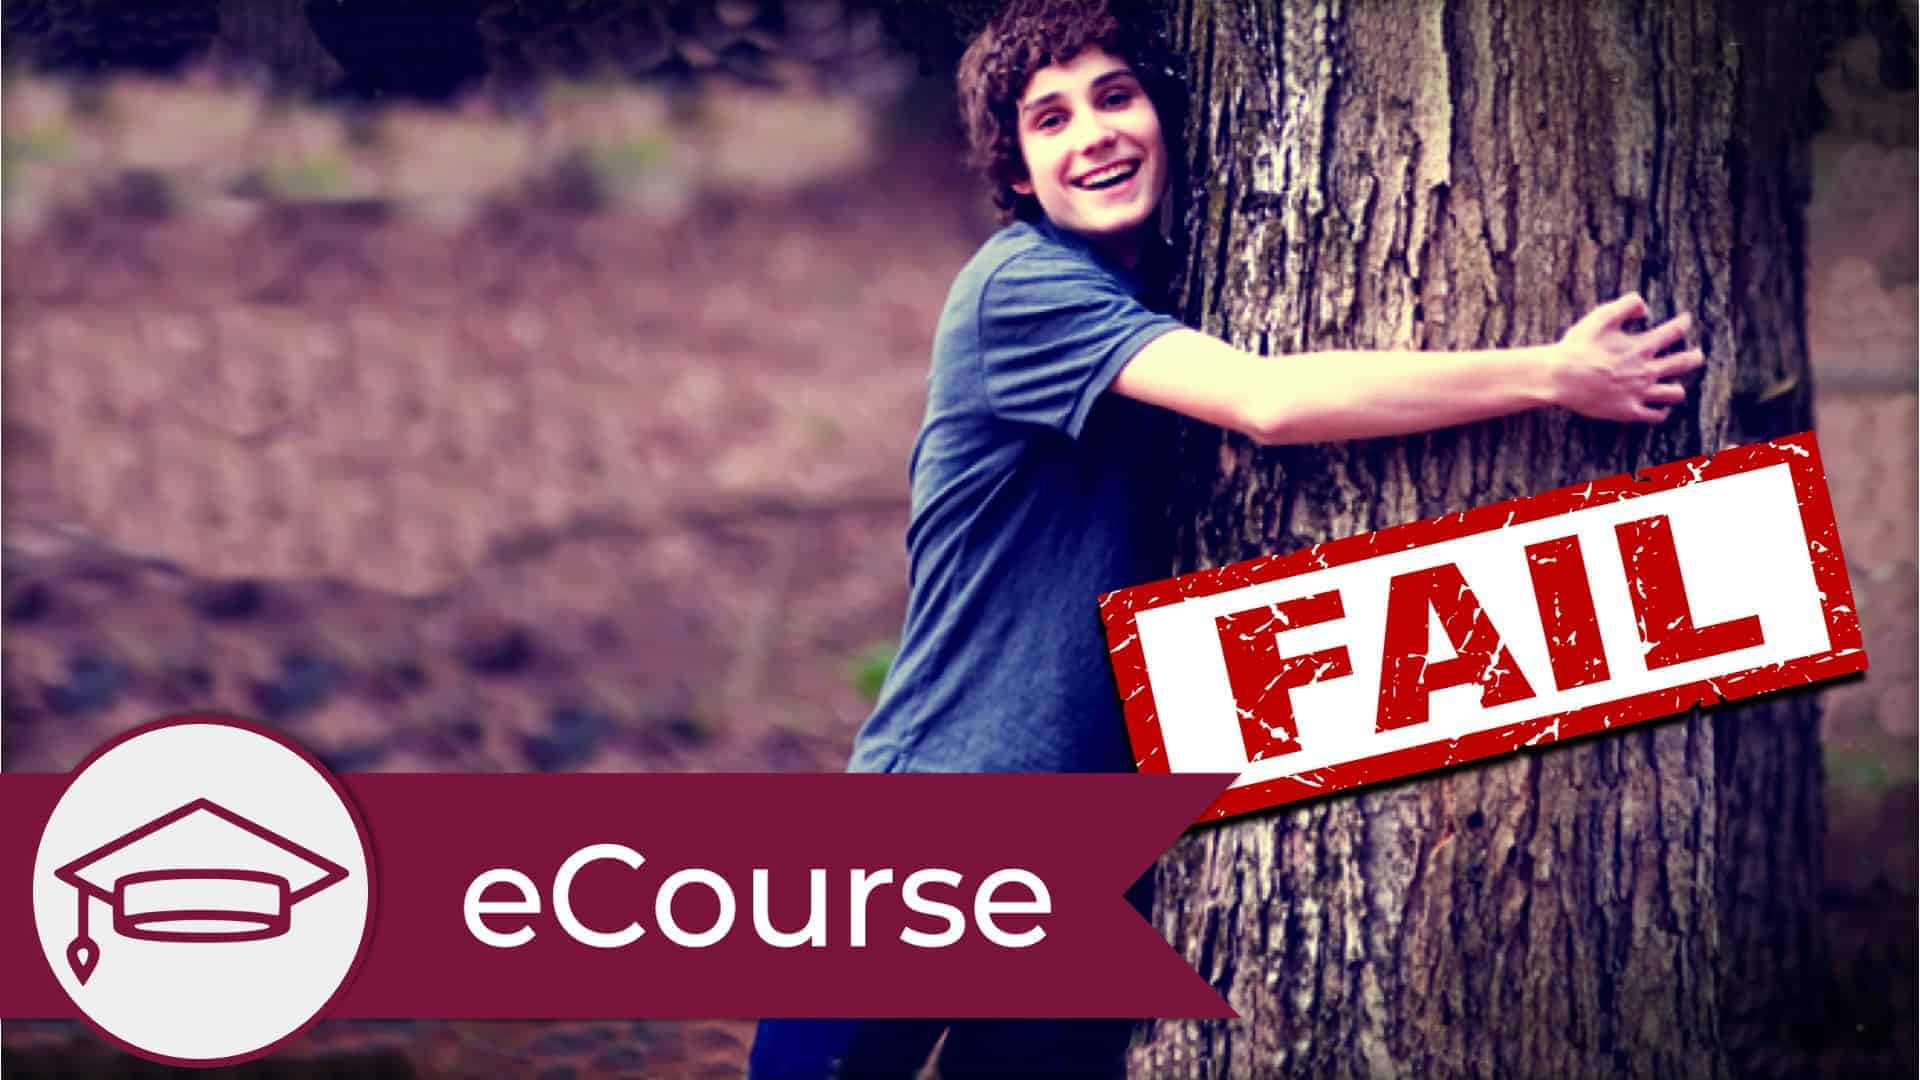 """A person with their arms wrapped around a wide tree trunk. The word """"FAIL"""" is stamped in red overtop the image. A graduate cap icon is in the lower left, signifying this is an eCourse."""